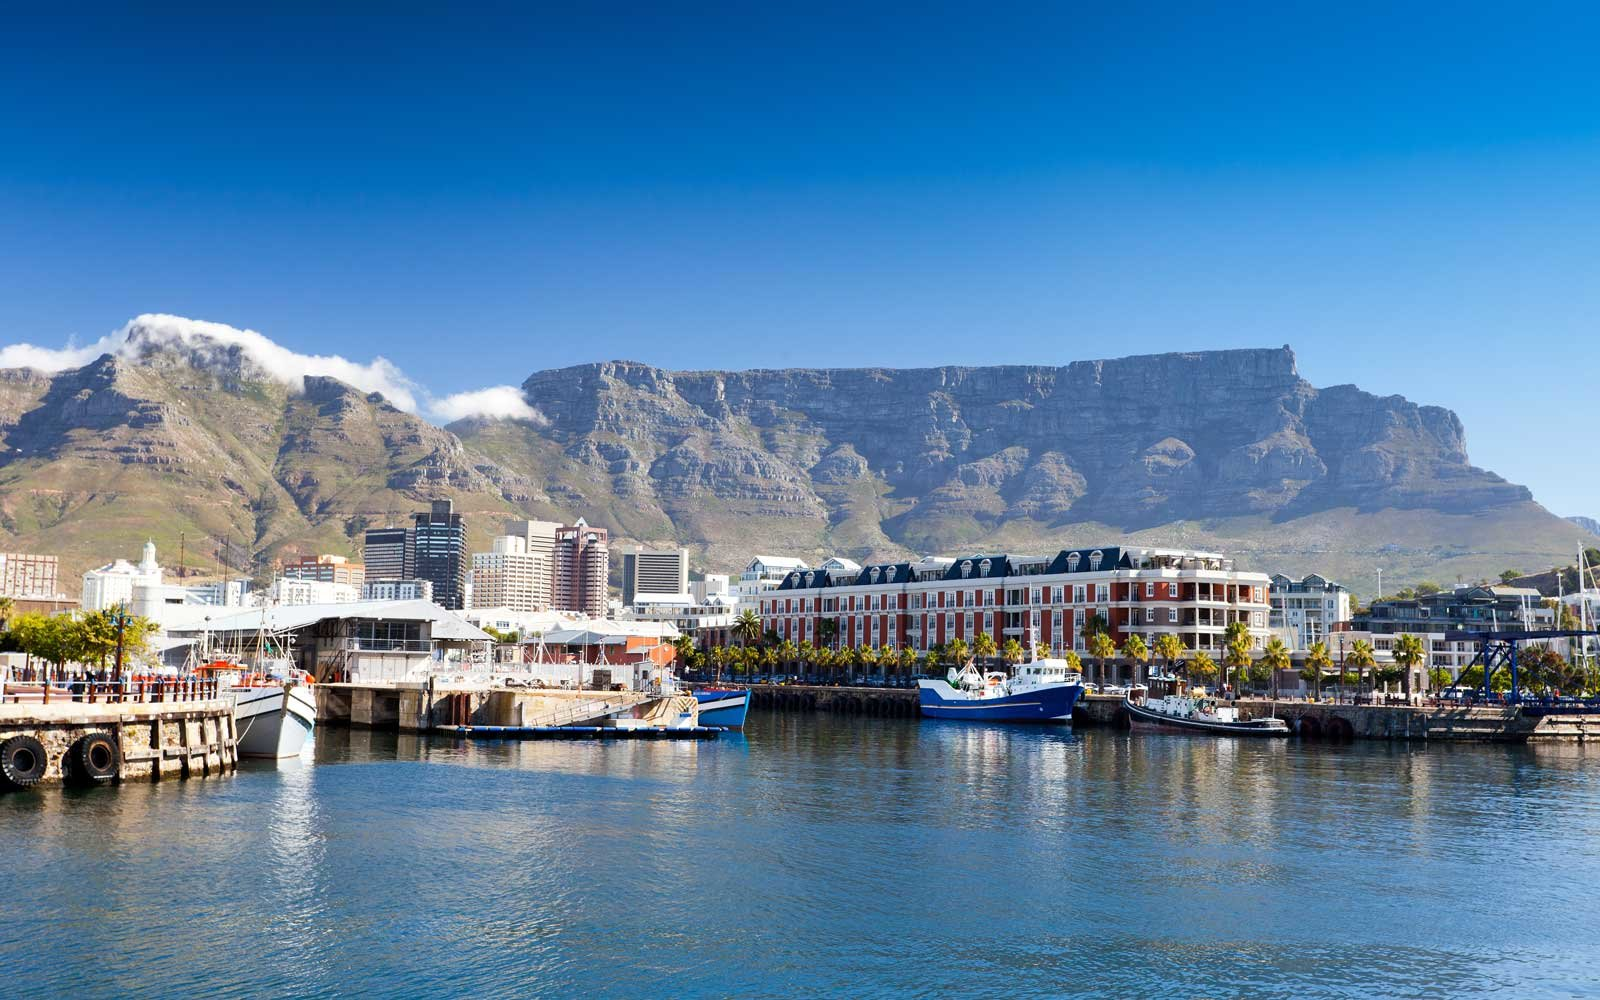 Sunny day at the Victoria & Albert Waterfront, in Cape Town, South Africa